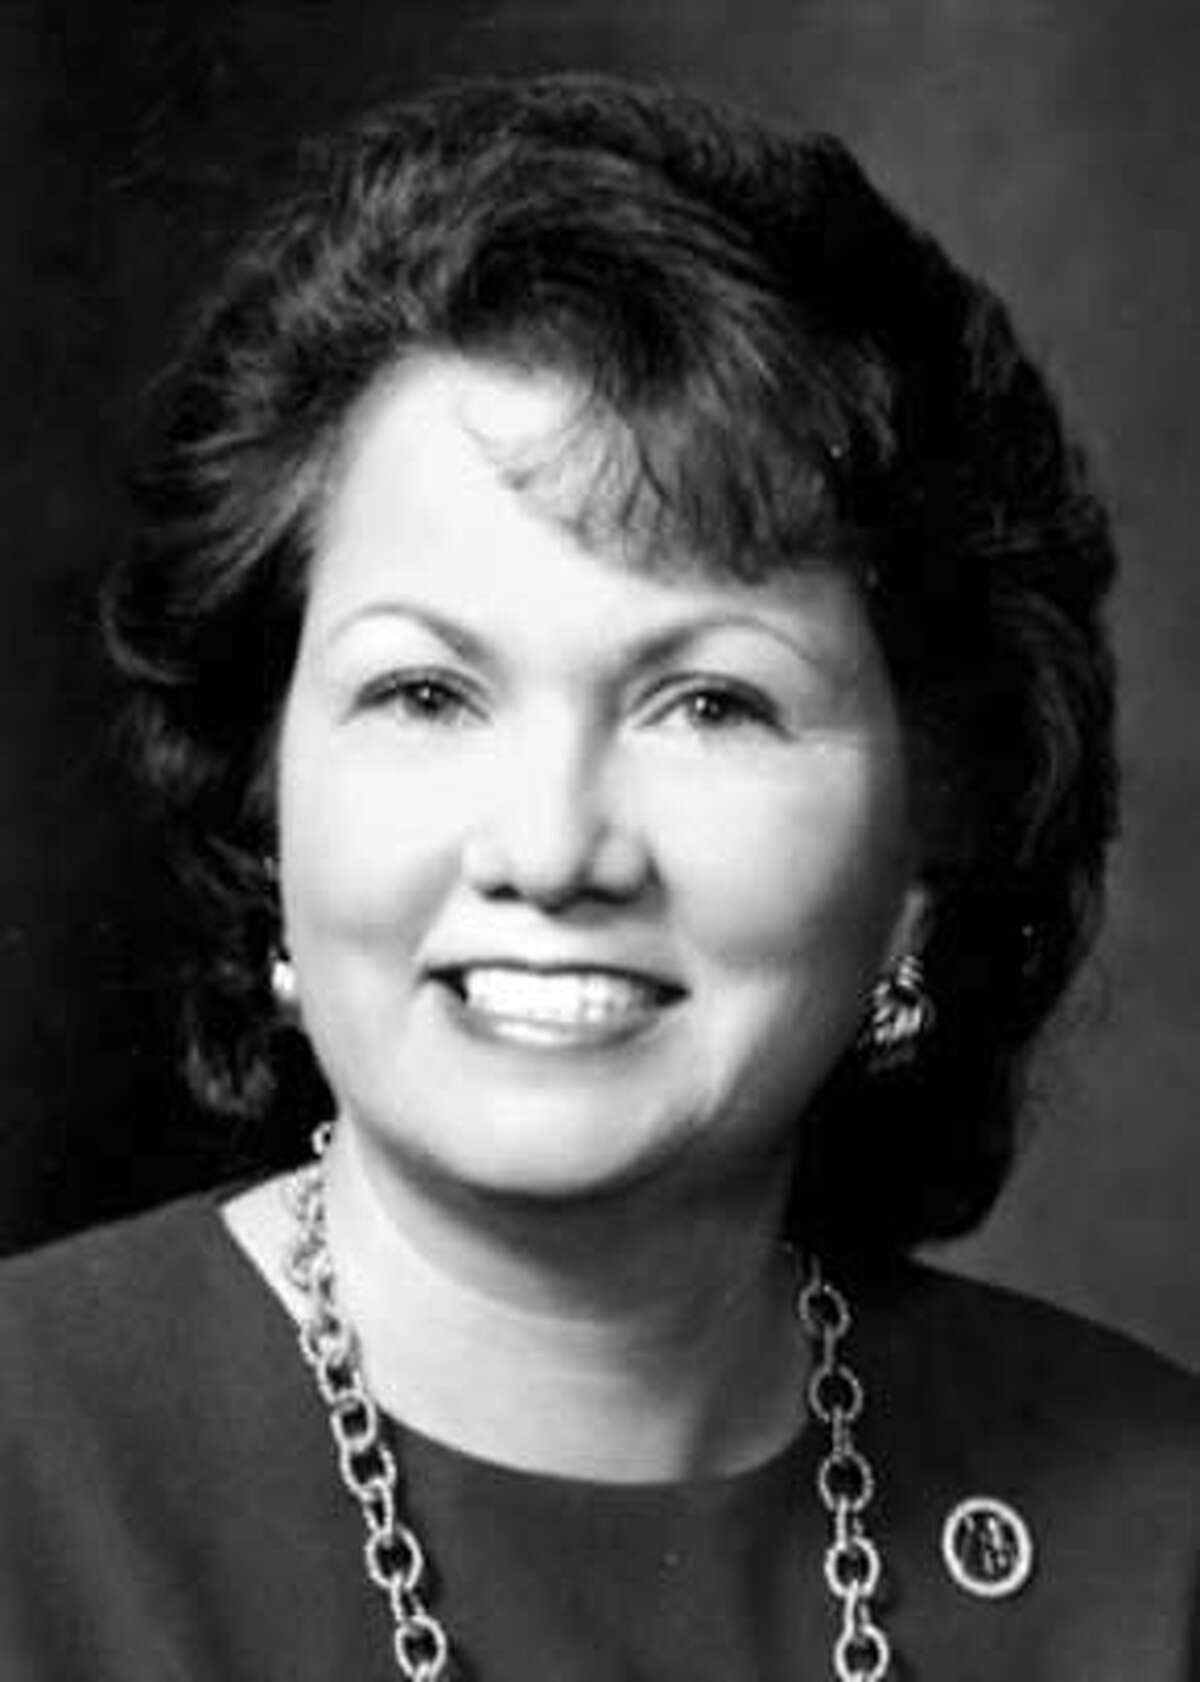 ALQUIST-B-18FEB00-PZ--- Democratic Assemblywoman Elaine Alquist is running for re-electon in District 22, which represents western San Jose, Sunnyvale, Mountain View and Santa Clara. (HAND IN/SAN FRANCISCO CHRONICLE)